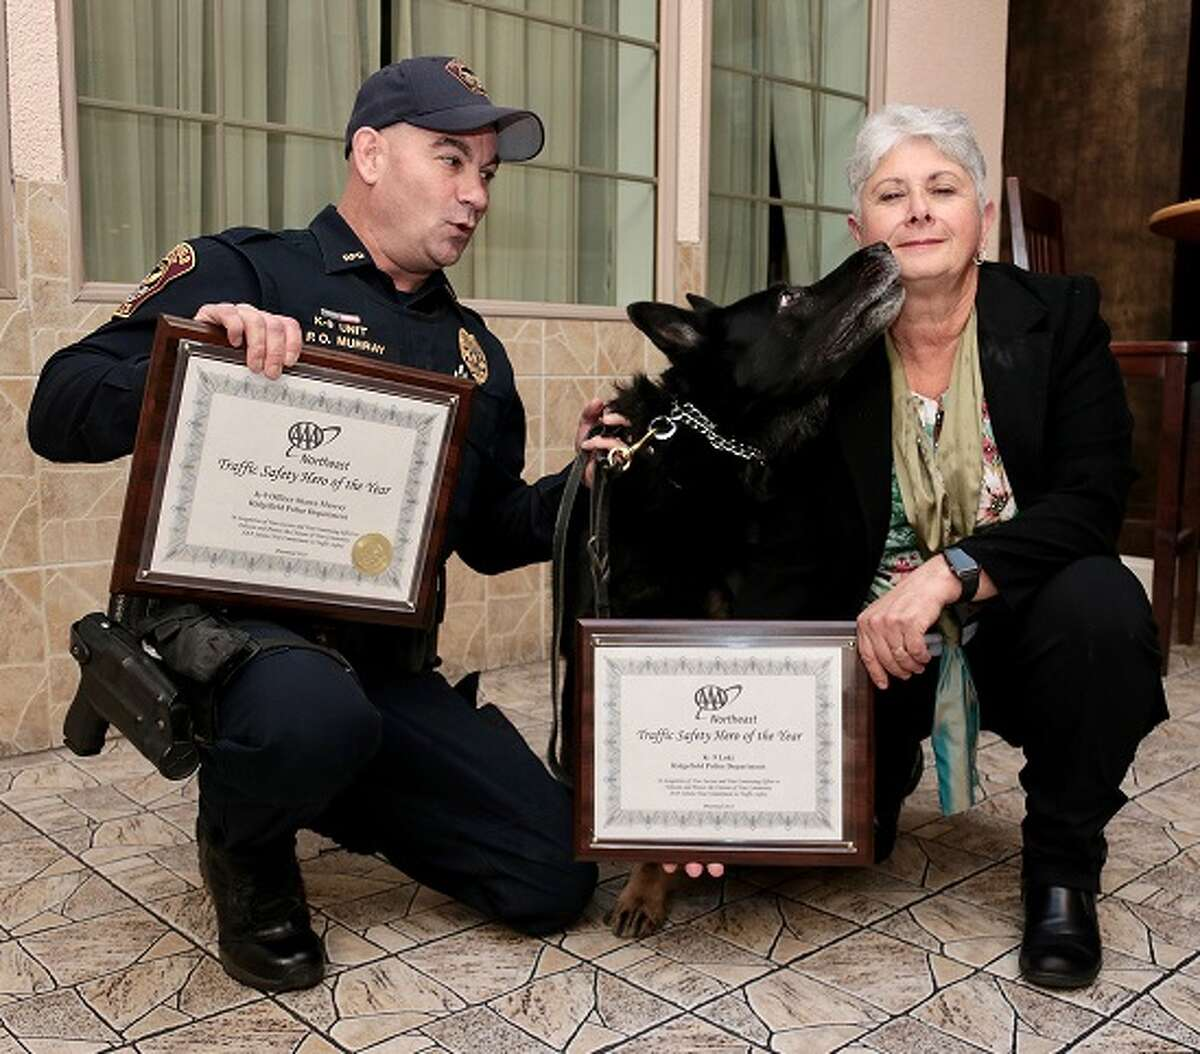 Ridgefield Police Department K9 officer Loki, a German Shepherd, gives AAA Northeast's Fran Mayko, right, a thank you kiss for his AAA Traffic Safety Hero award as his very surprised partner, K9 Officer Shawn Murray, another